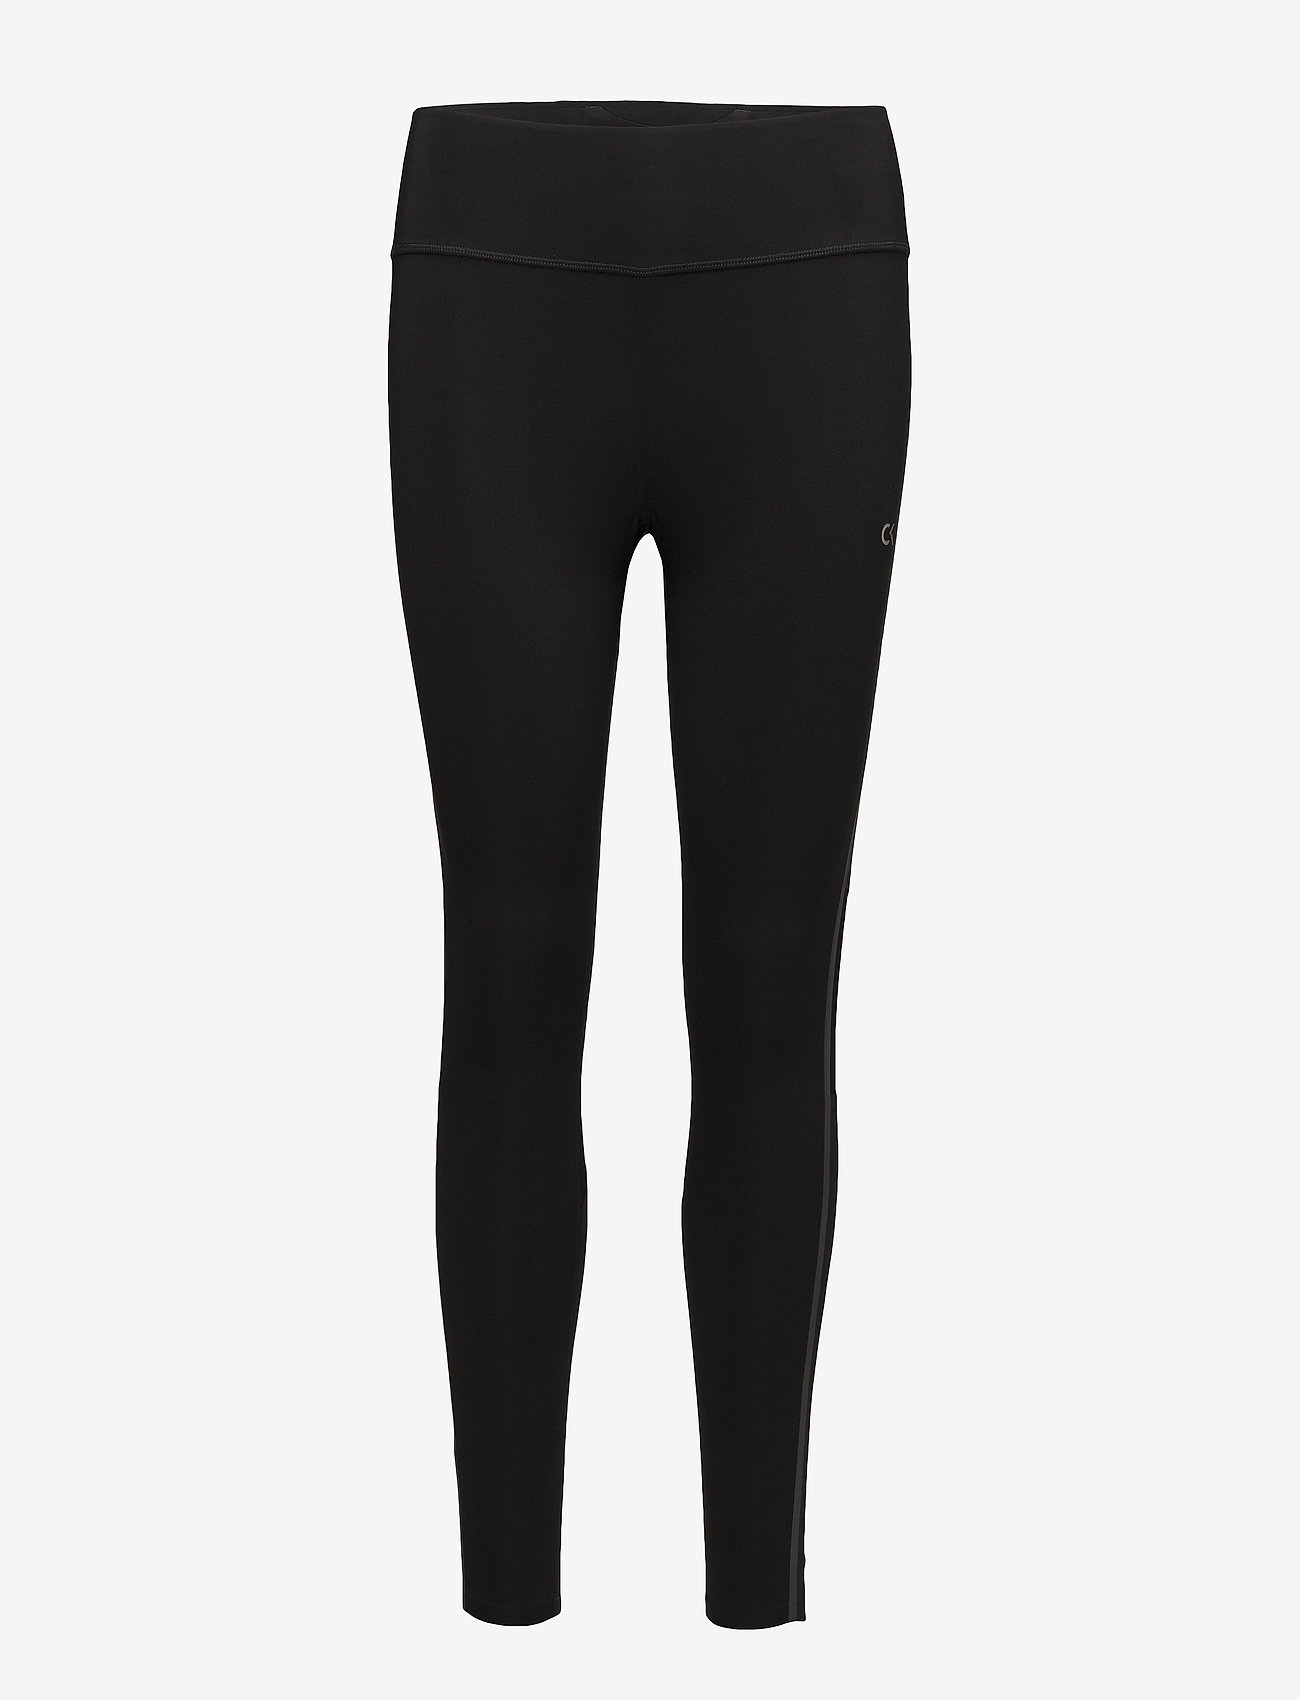 Calvin Klein Performance - FULL LENGTH BUTT LIF - running & training tights - ck black - 0